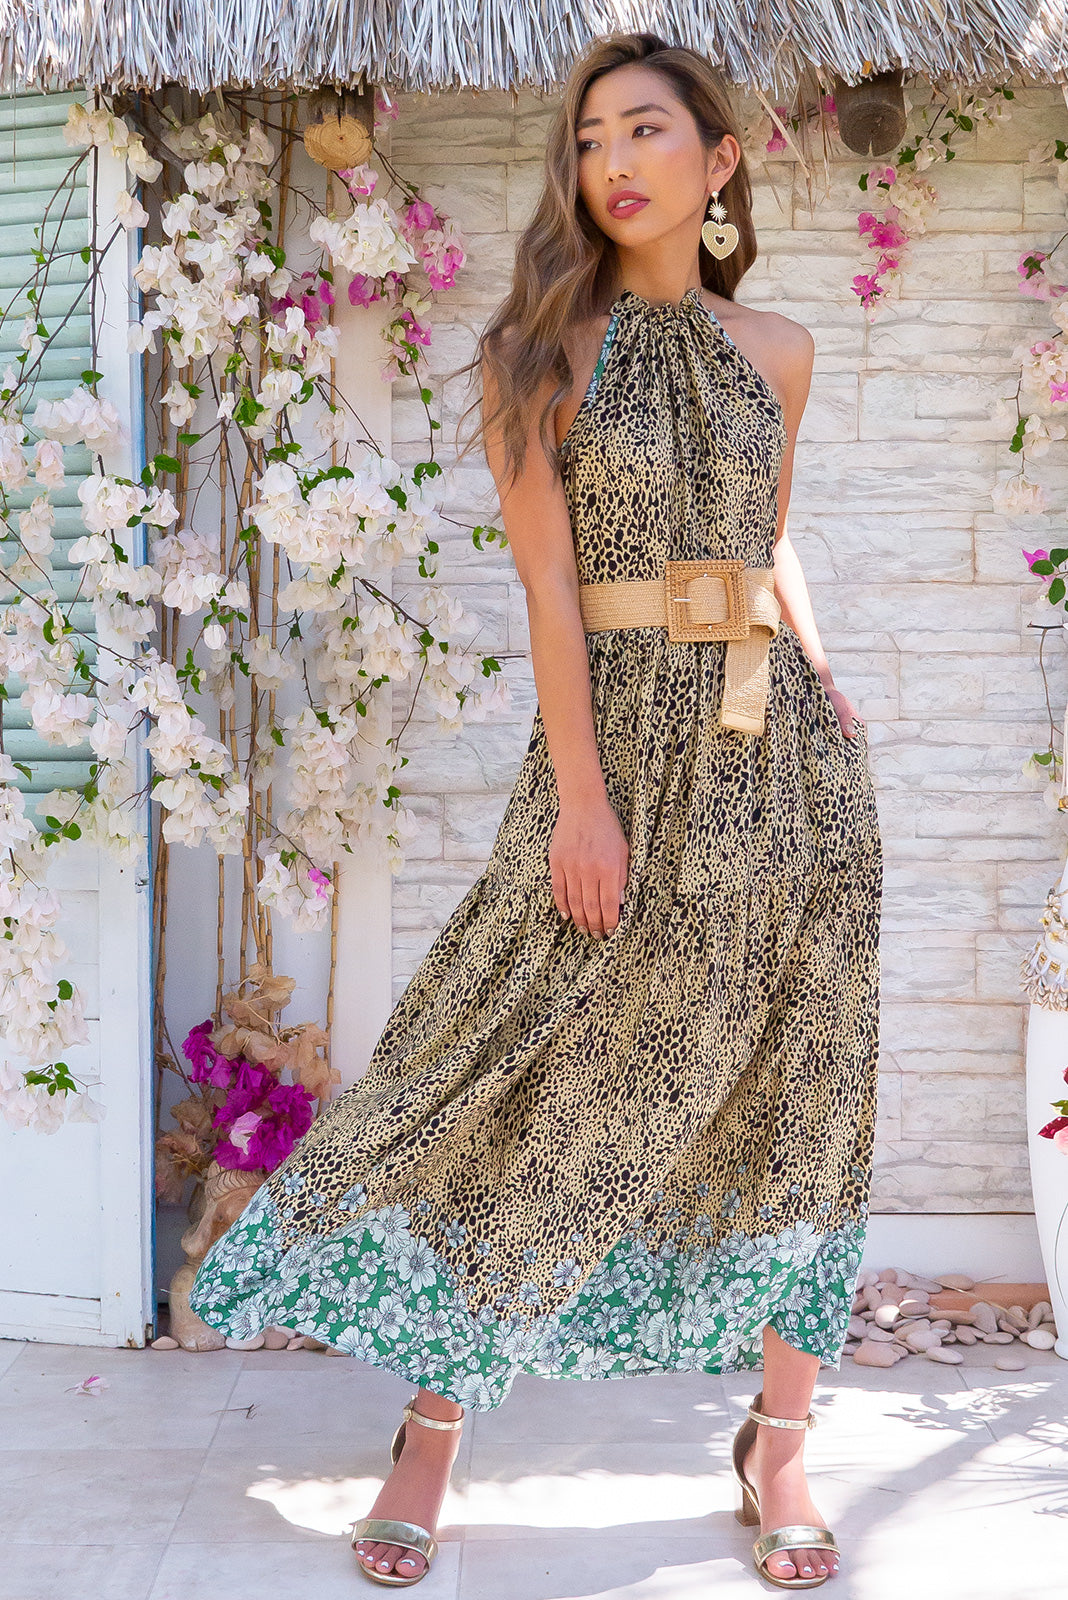 Noosa Nala Maxi Dress Leopard Print Bohemian inspired, features complimentary rattan belt, halter neck, adjustable string neckline, side pockets, tiered skirt and woven 100% rayon in a beige base covered with black animal spots with contrasting green floral border print.